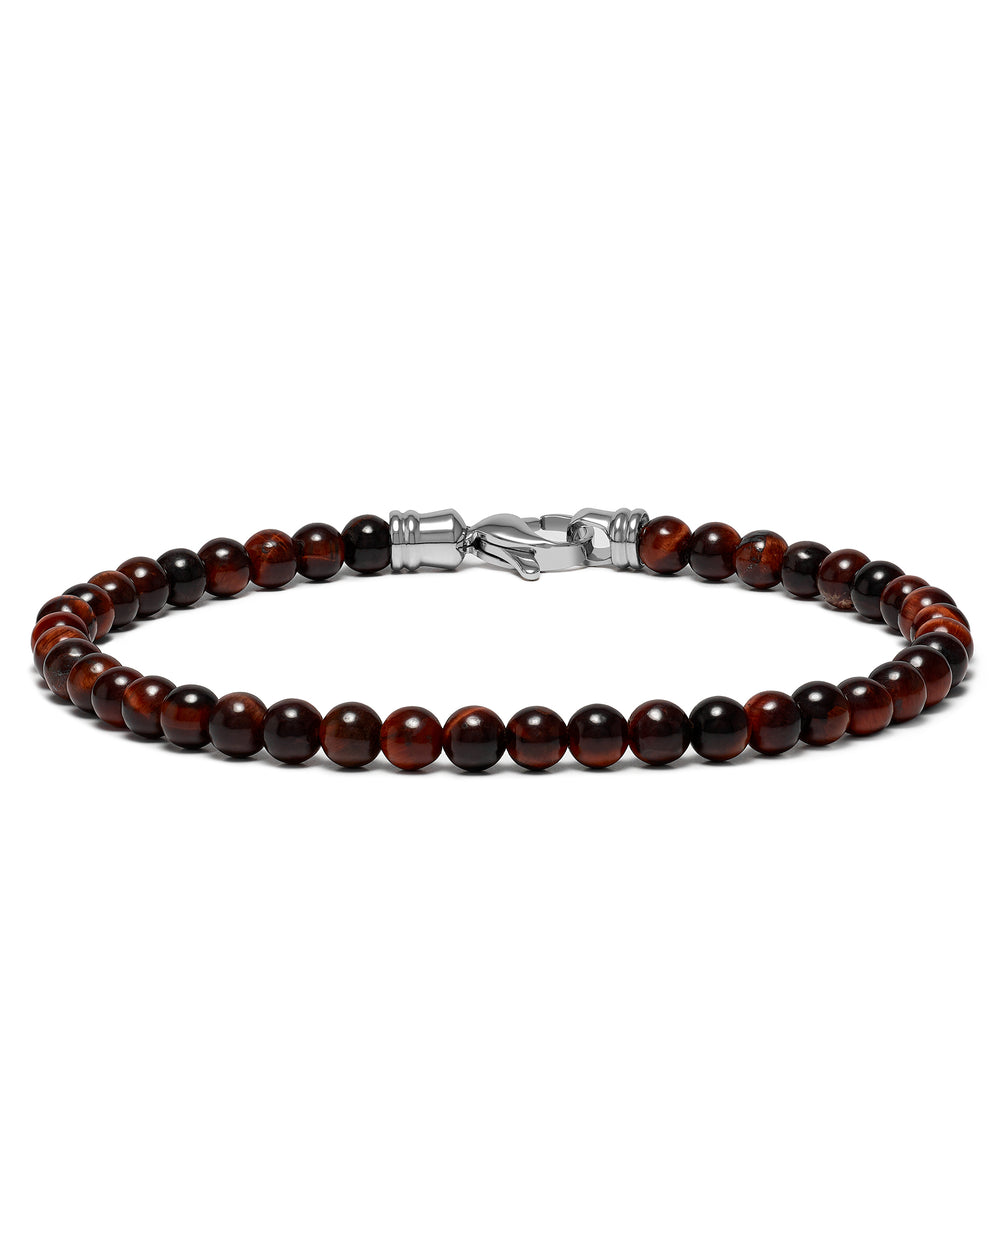 Bead Bracelet - Red Tiger's Eye